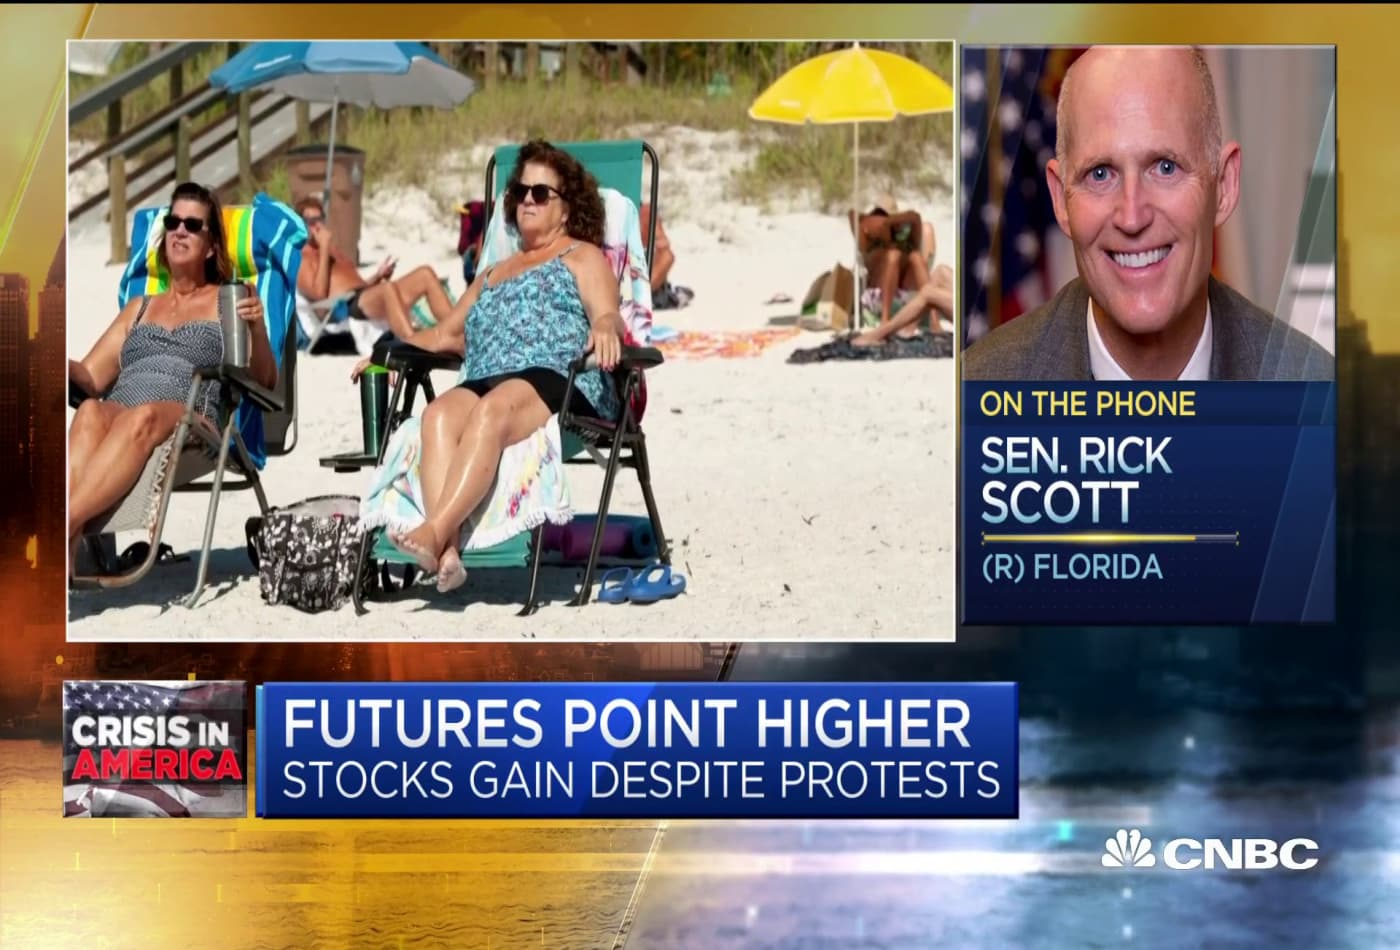 Sen. Rick Scott: We shouldn't bail out states with 'ridiculous budgets' such as New York